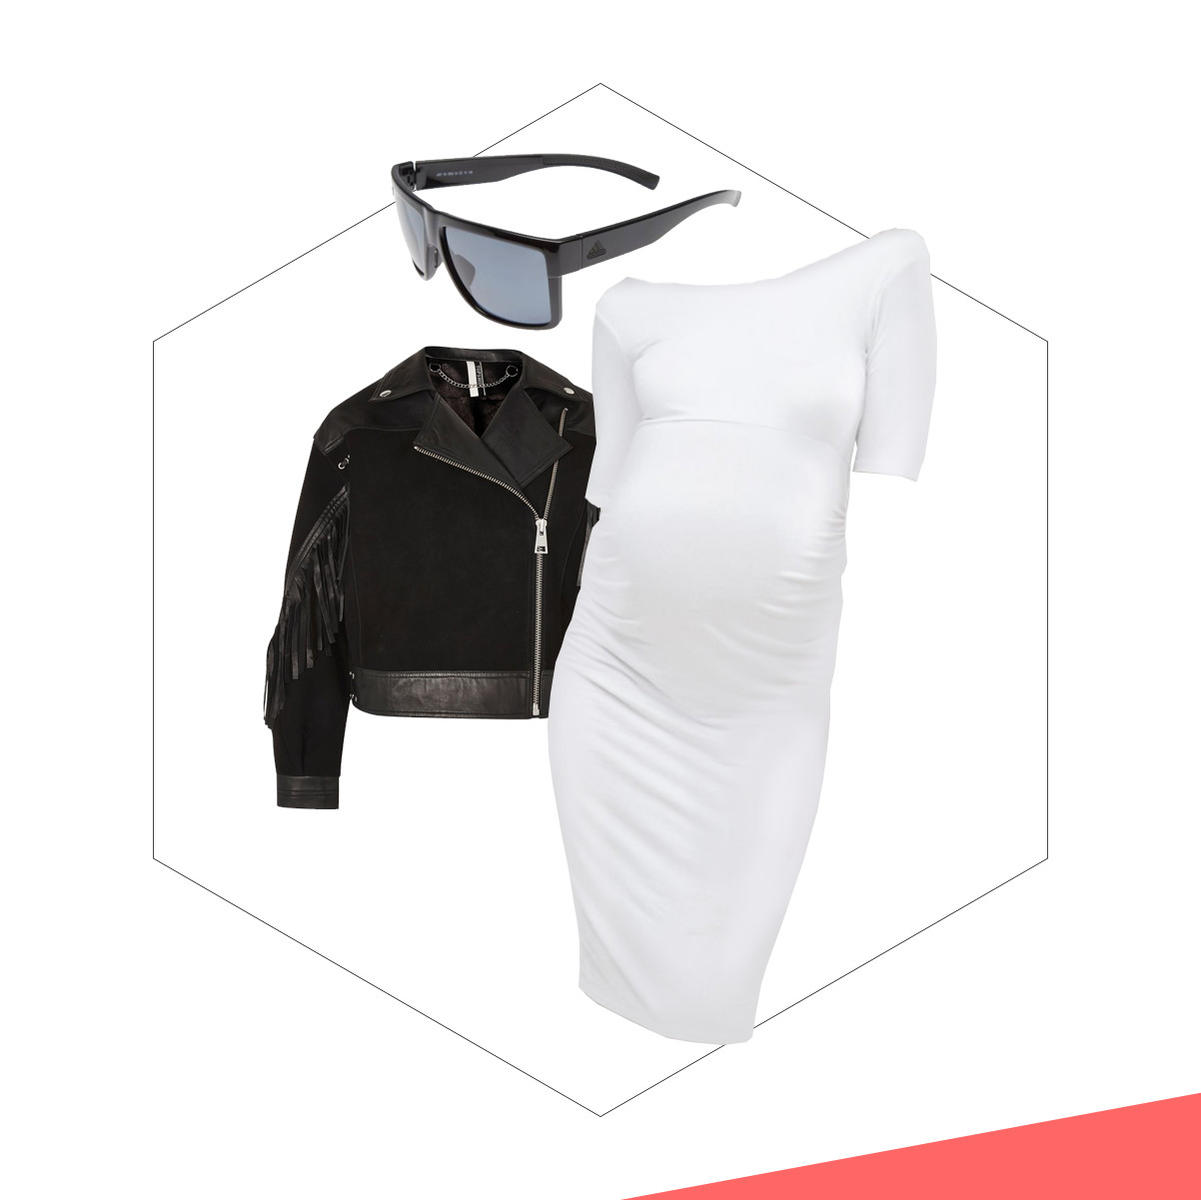 A white bodycon dress with a black leather jacket and sunglasses